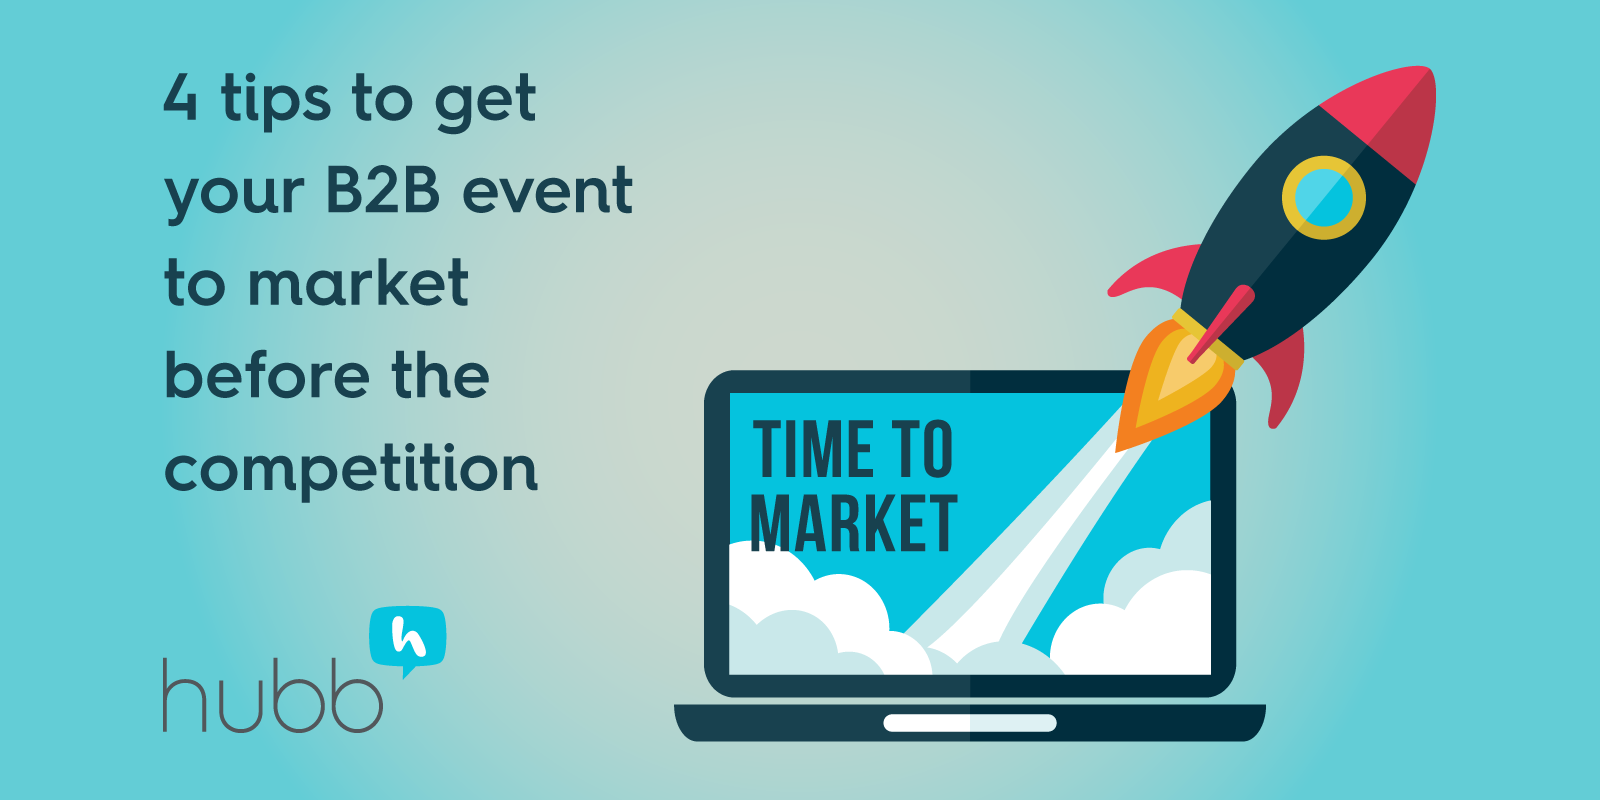 4Tips-B2B-Event-to-Market-Social